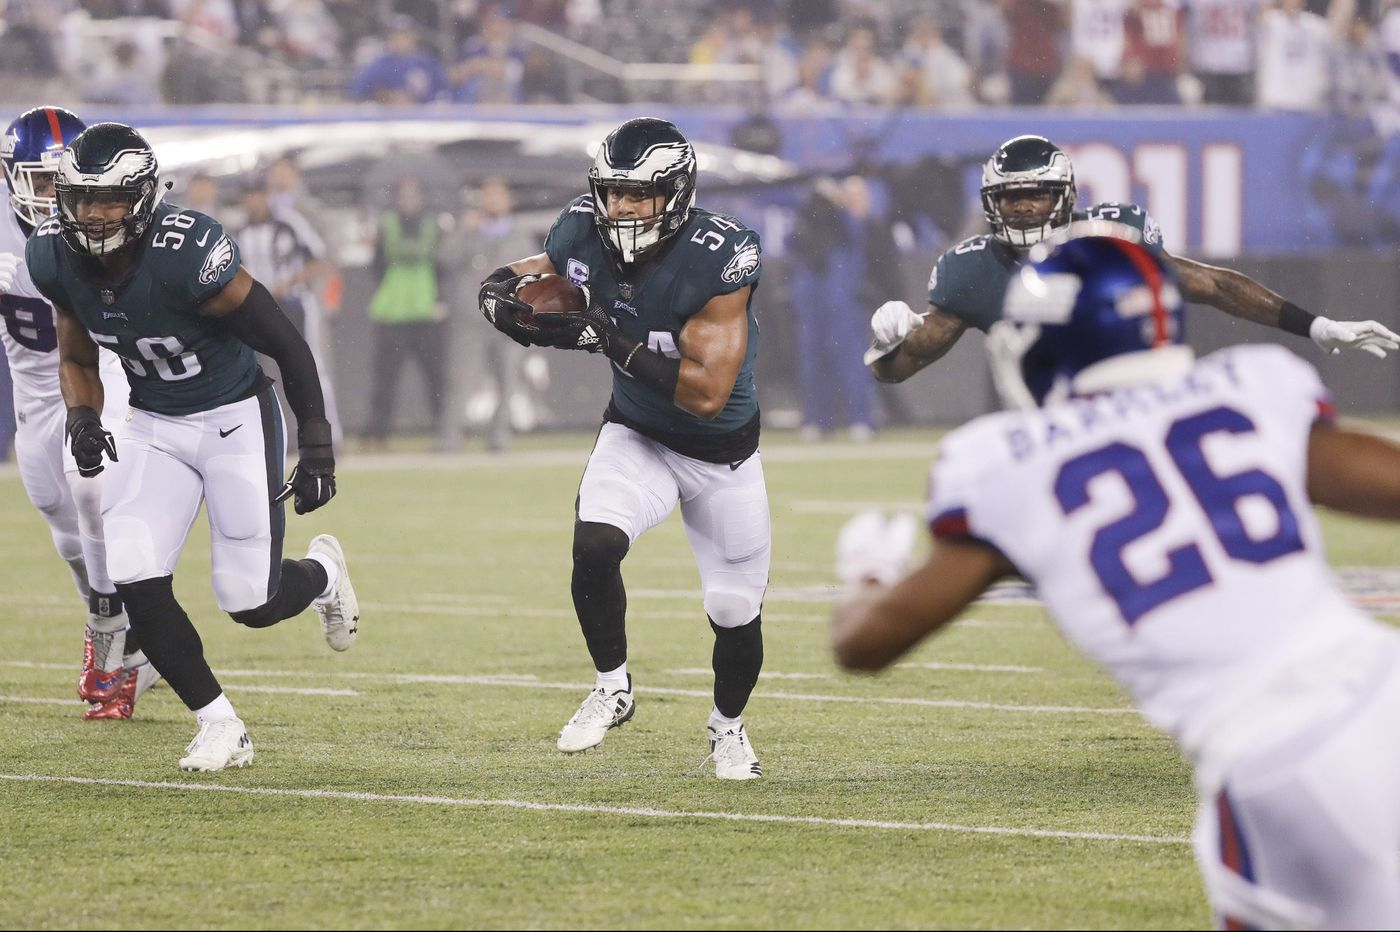 Jordan Hicks and Kamu Grugier-Hill tipped the Eagles off to a fast start in win over Giants